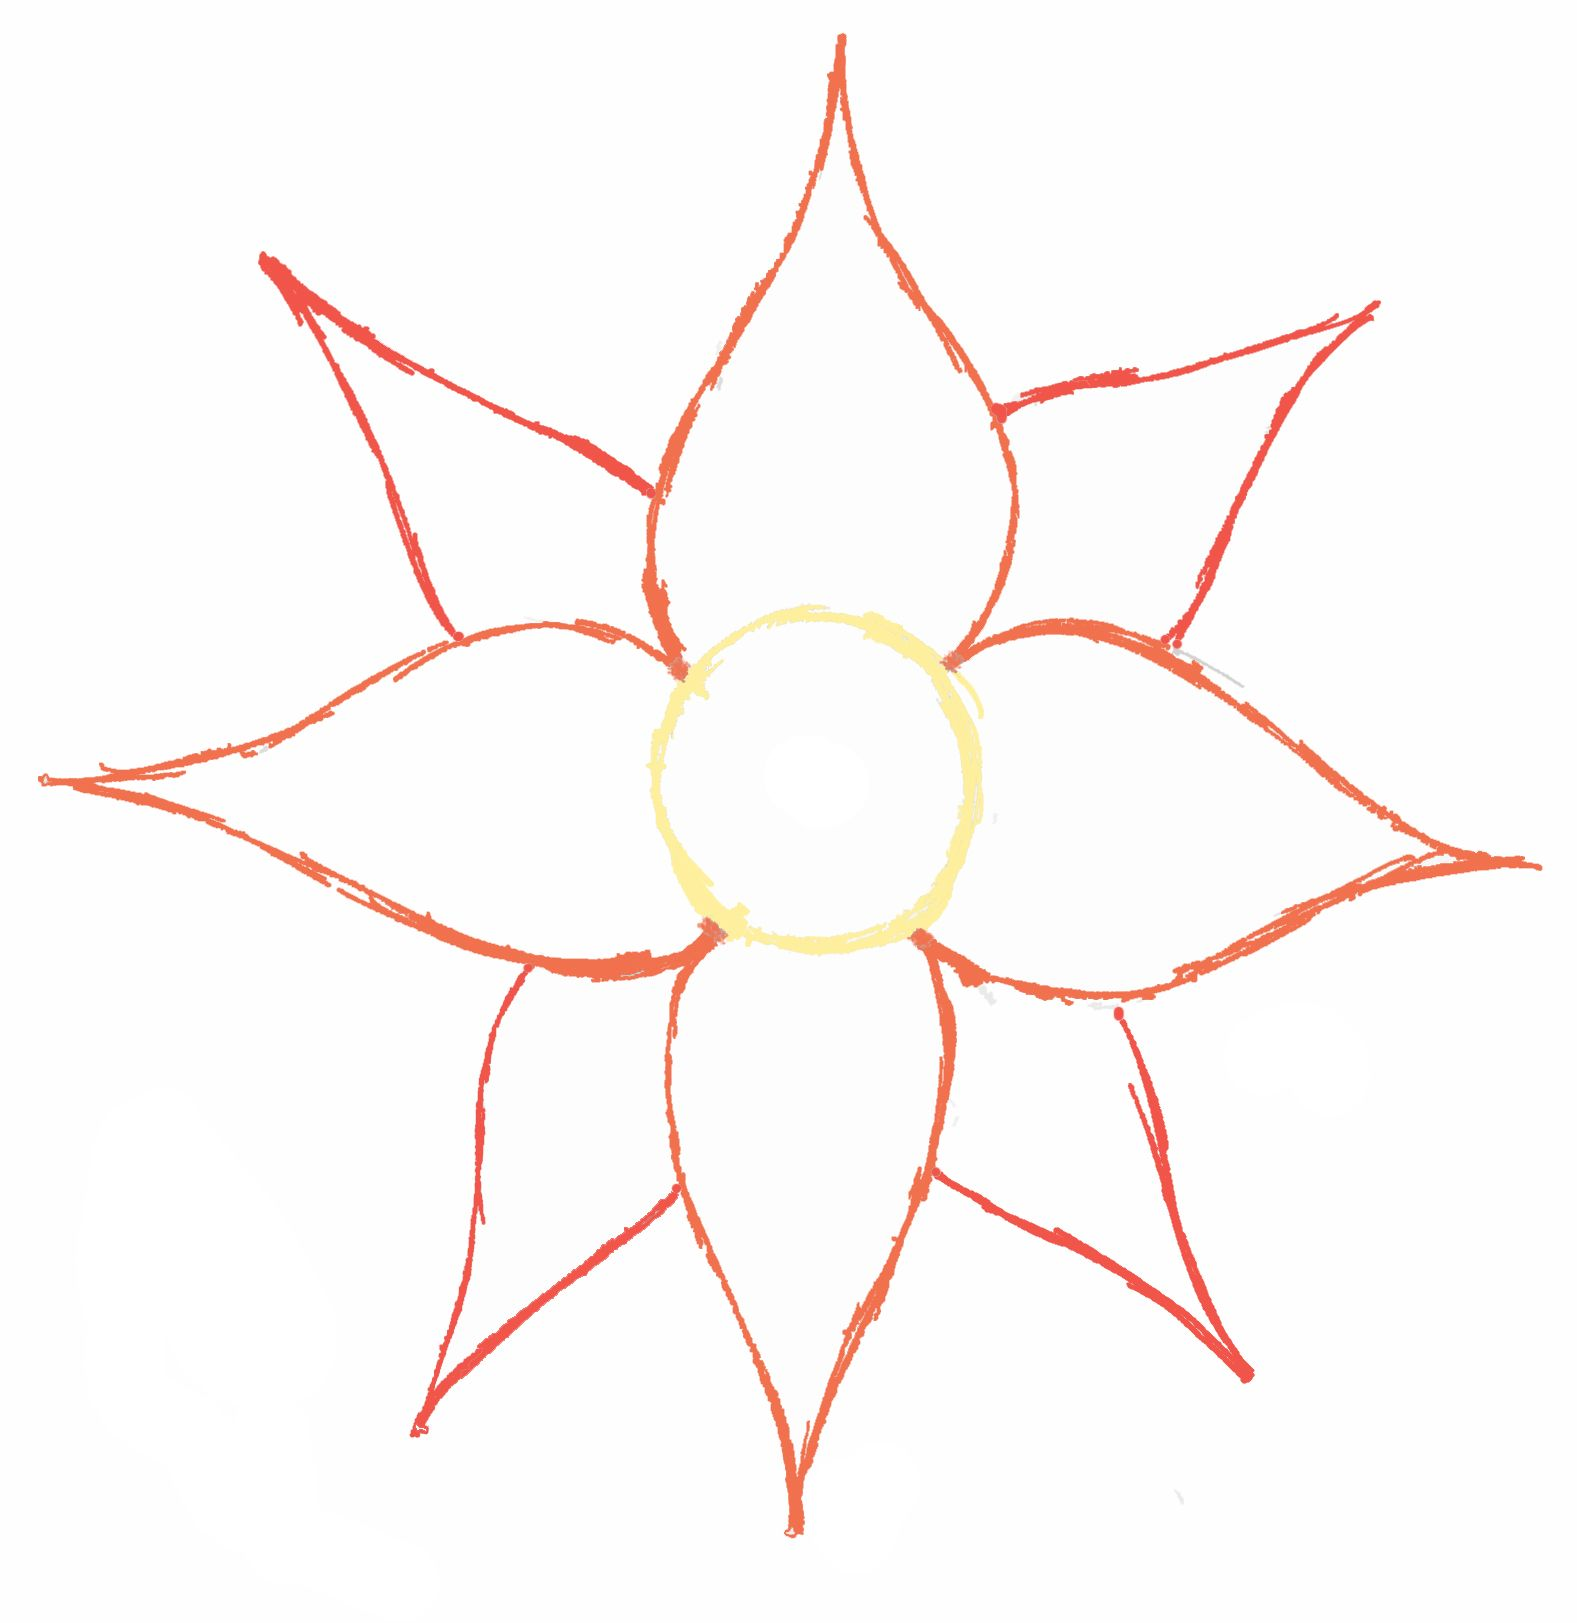 Simple Flower Drawing Outline Google Search Flower Drawing Flower Drawing Images Simple Flower Drawing